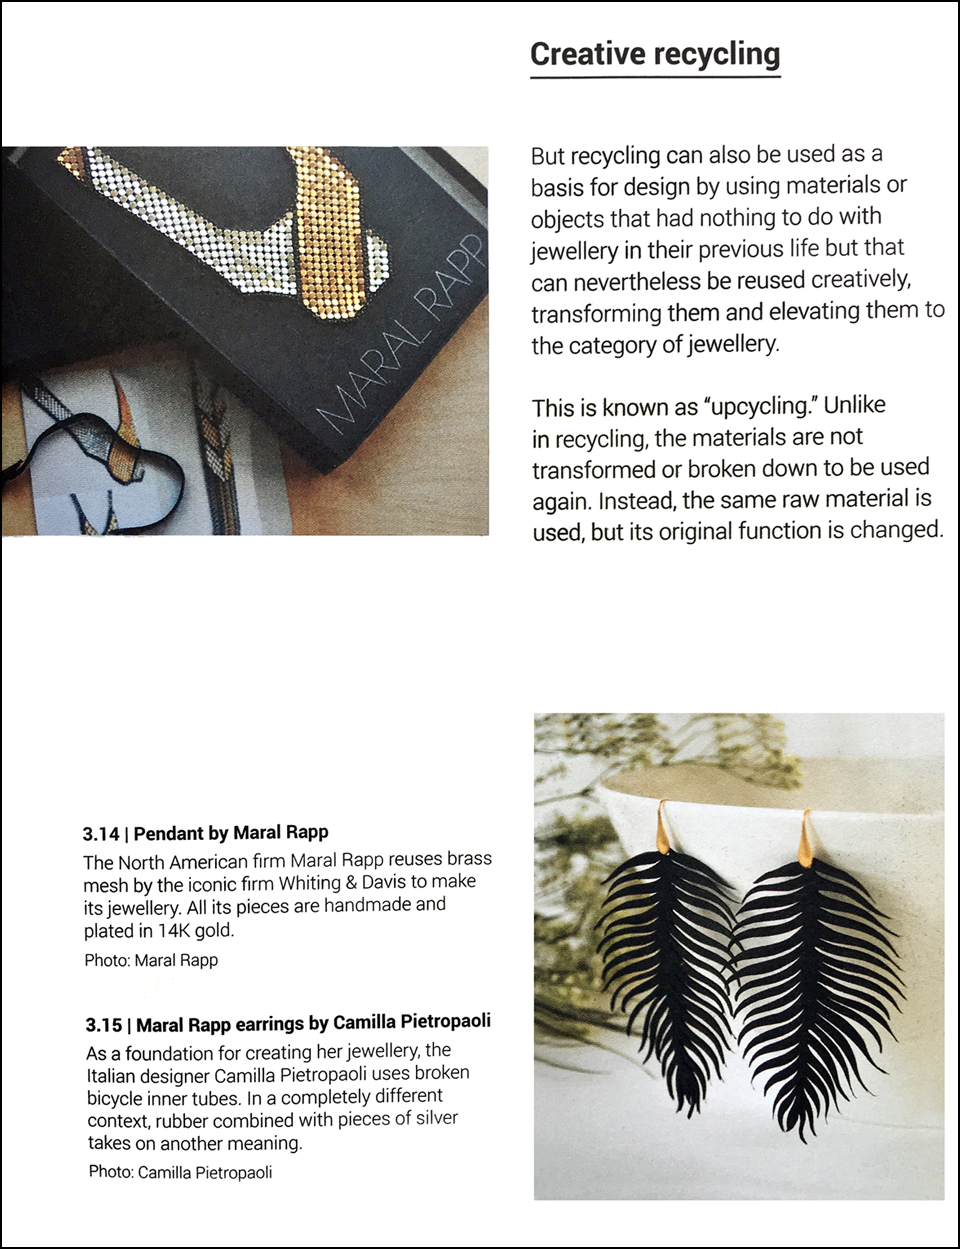 Sustainable Jewellery, Principles and Practices for Creating an Ethical Brand, 2018